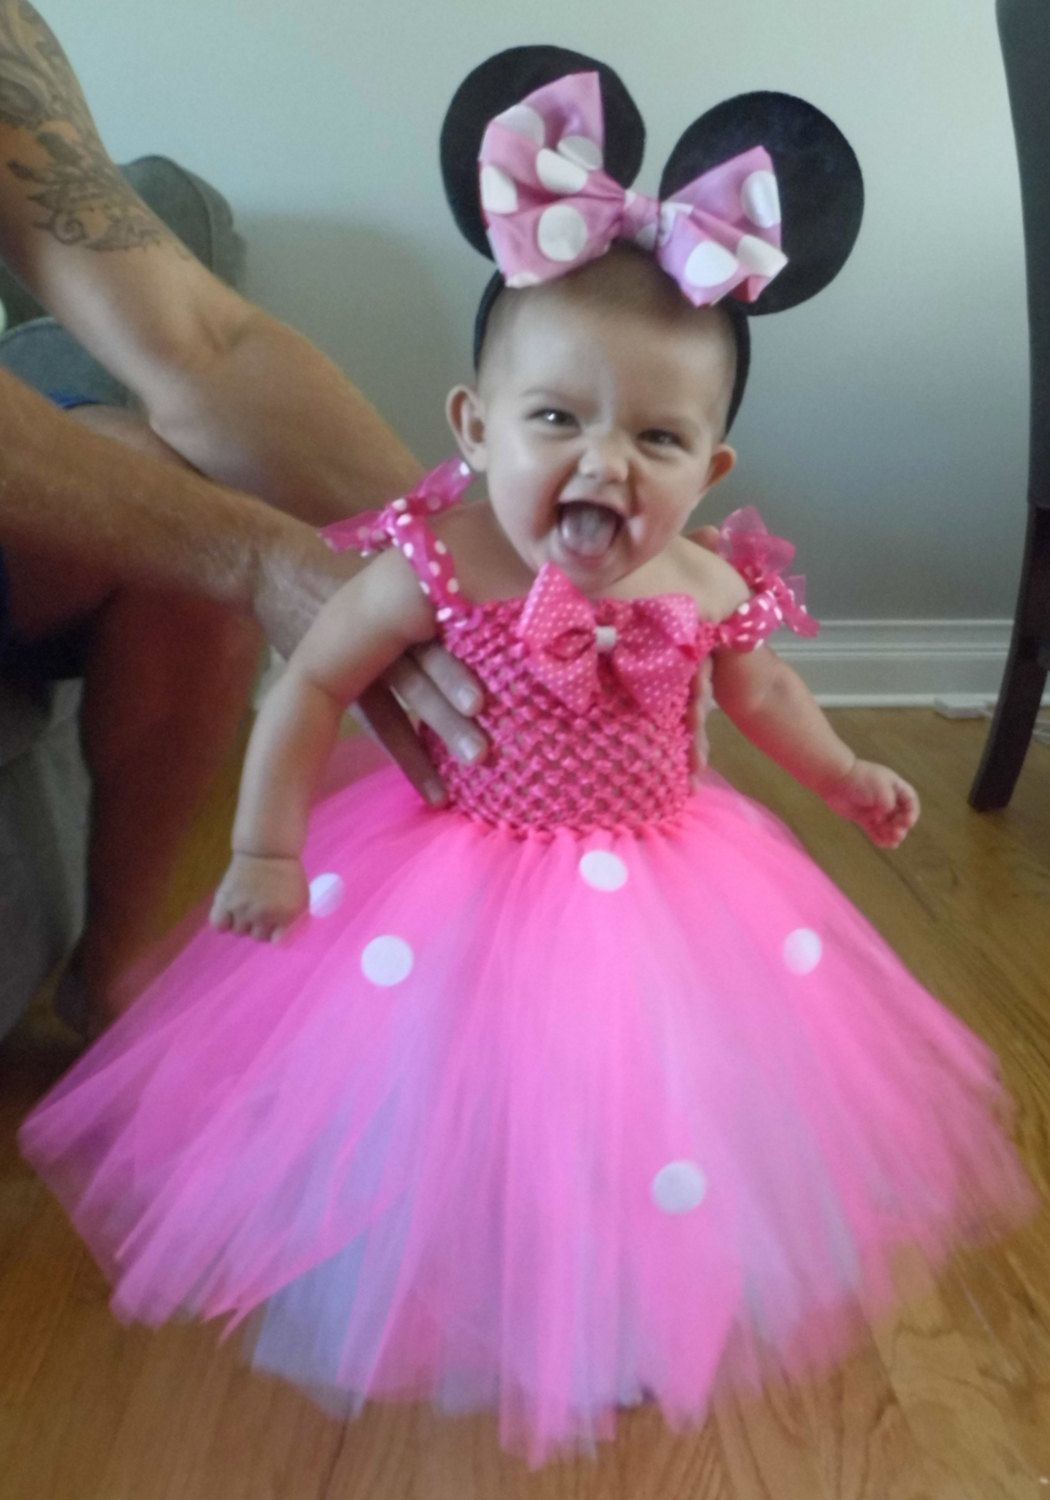 Minnie Mouse tutu Halloween Costume by ericabilezikjian on Etsy $35.00  sc 1 st  Pinterest & So cute!!! Minnie Mouse tutu Halloween Costume by ericabilezikjian ...